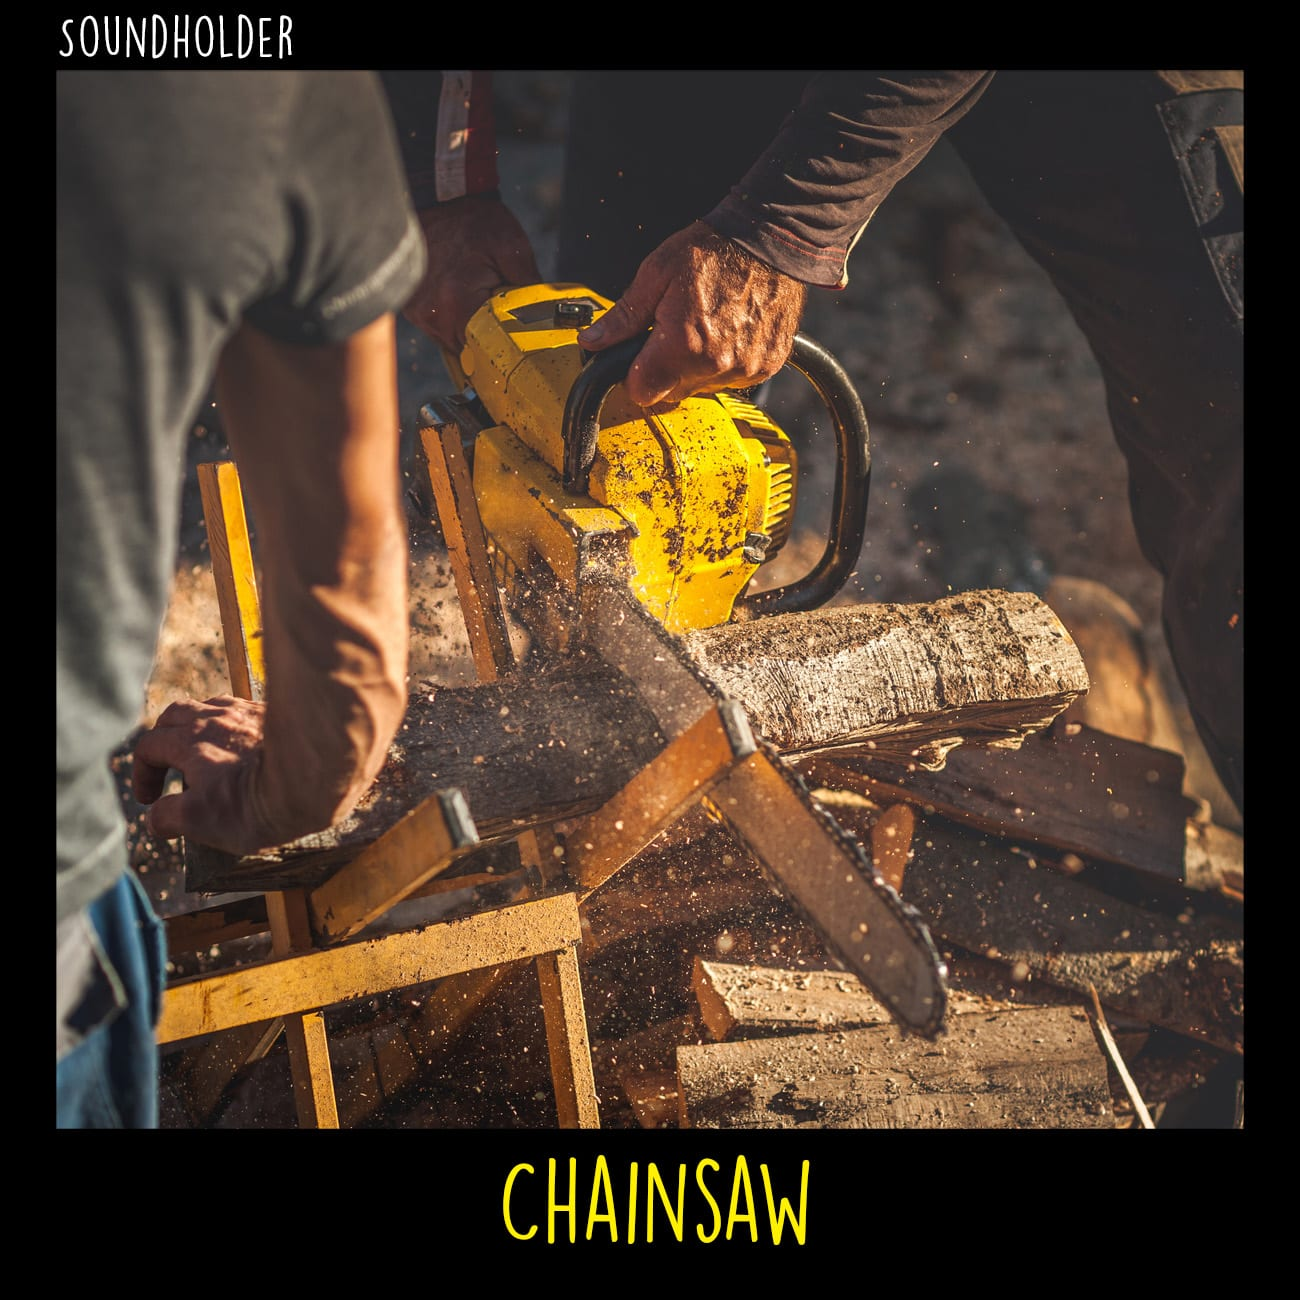 Chainsaw_CoverASFX